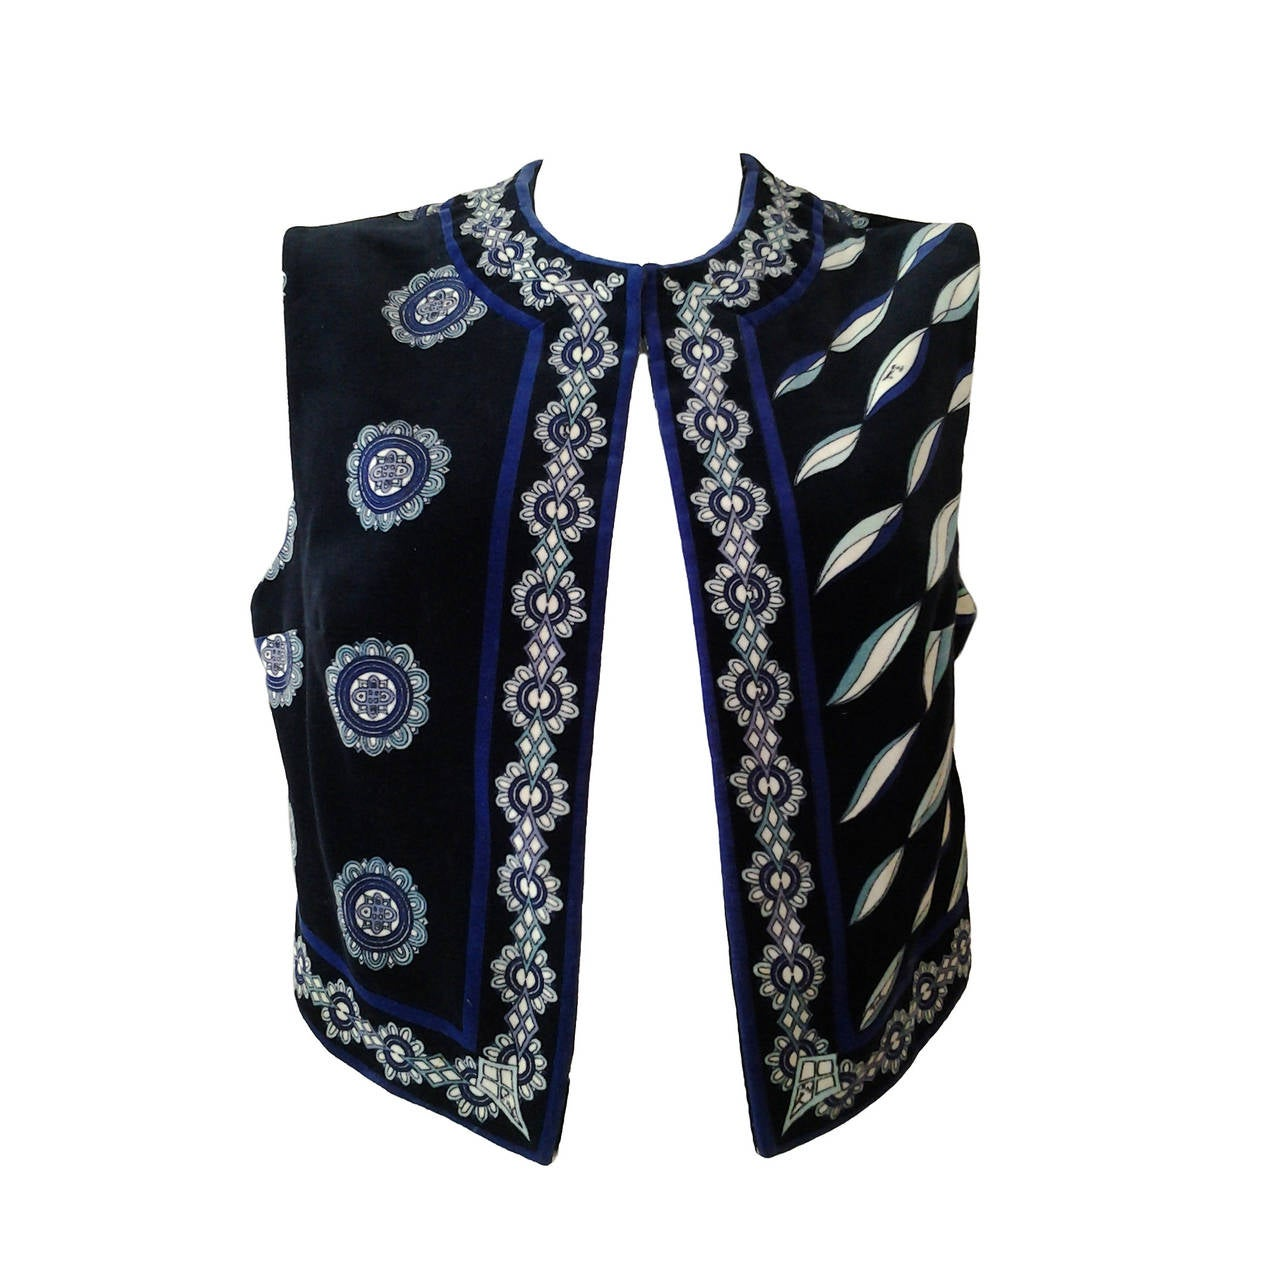 1960s Emilio Pucci Cotton Velveteen Mod Vest In Blues, Black and White 1